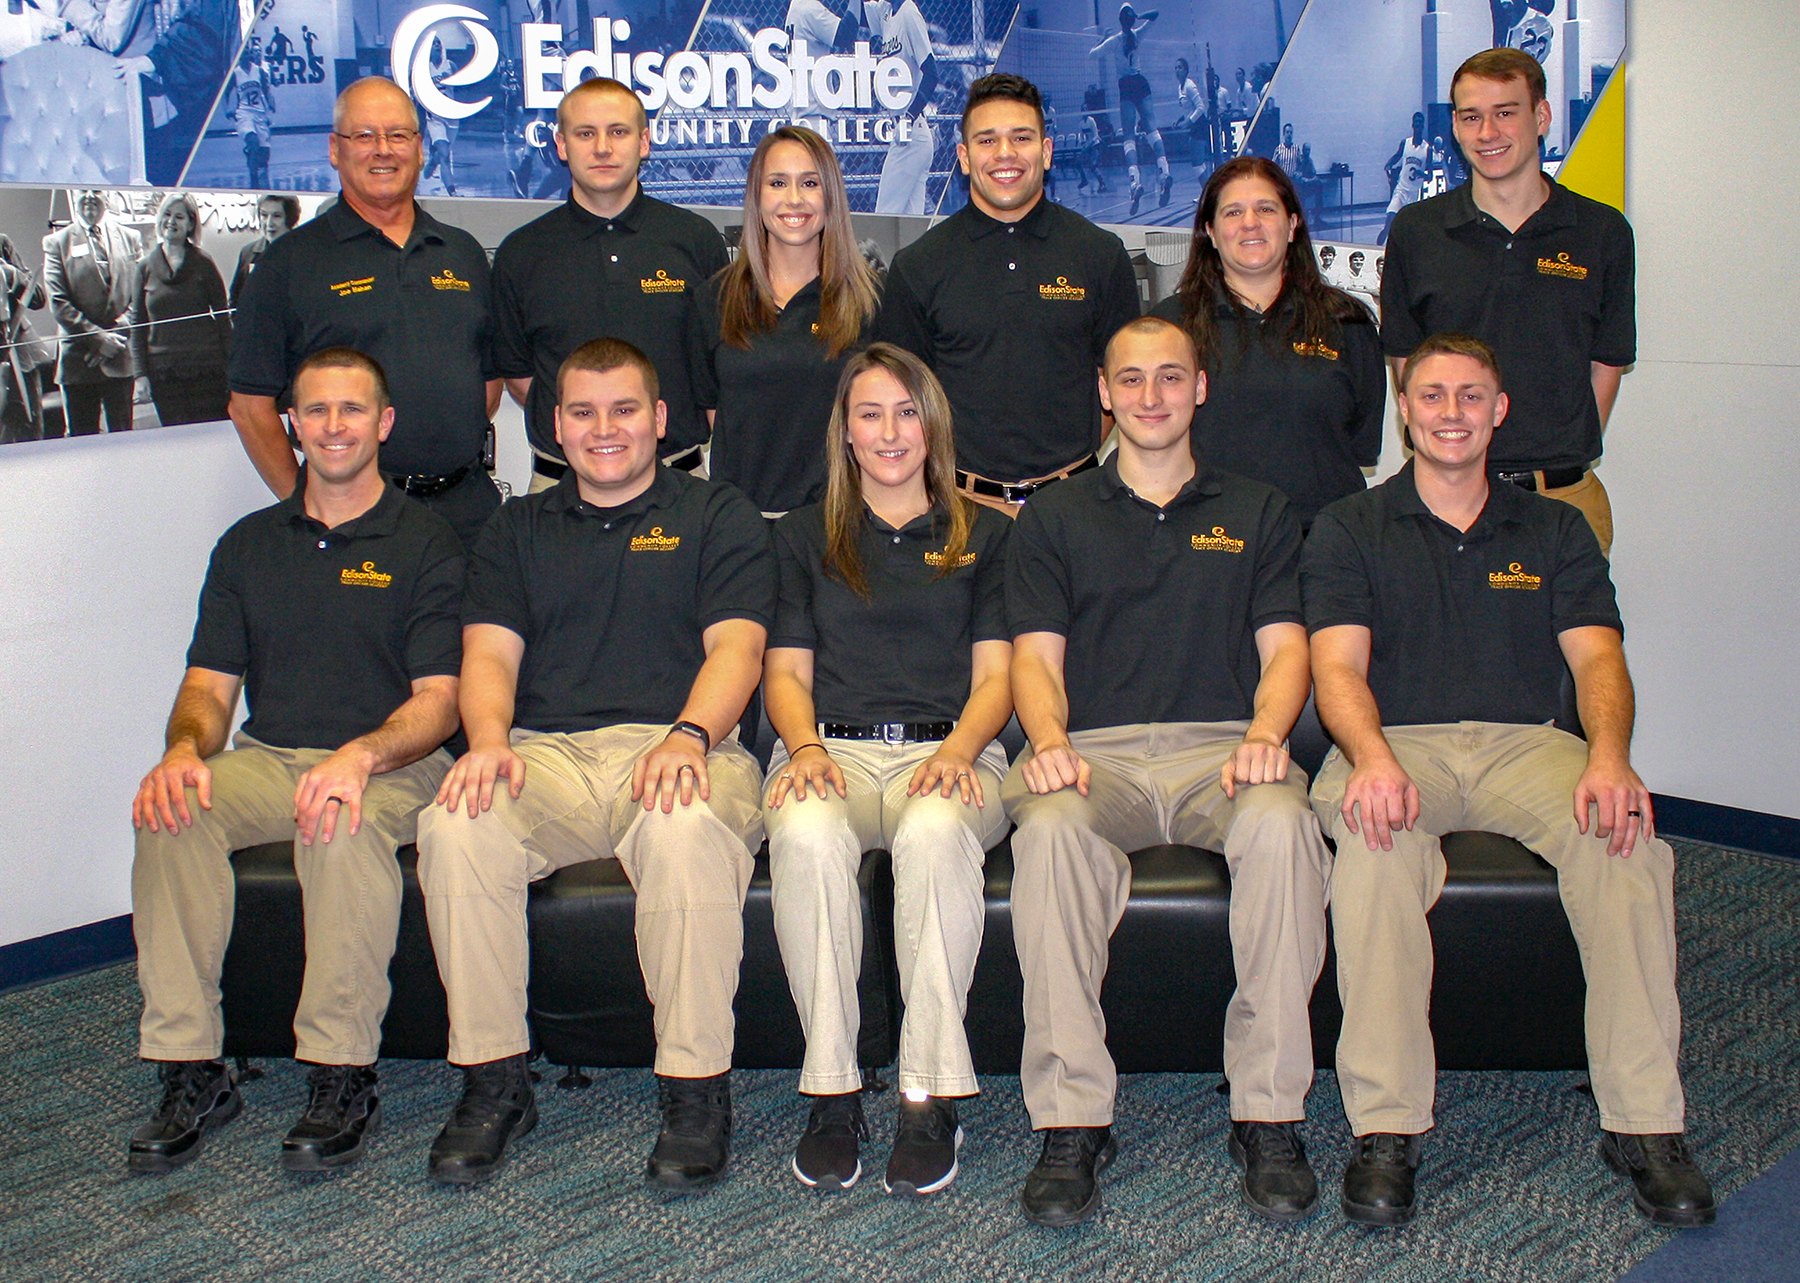 Edison State Students Complete Police Training Edison